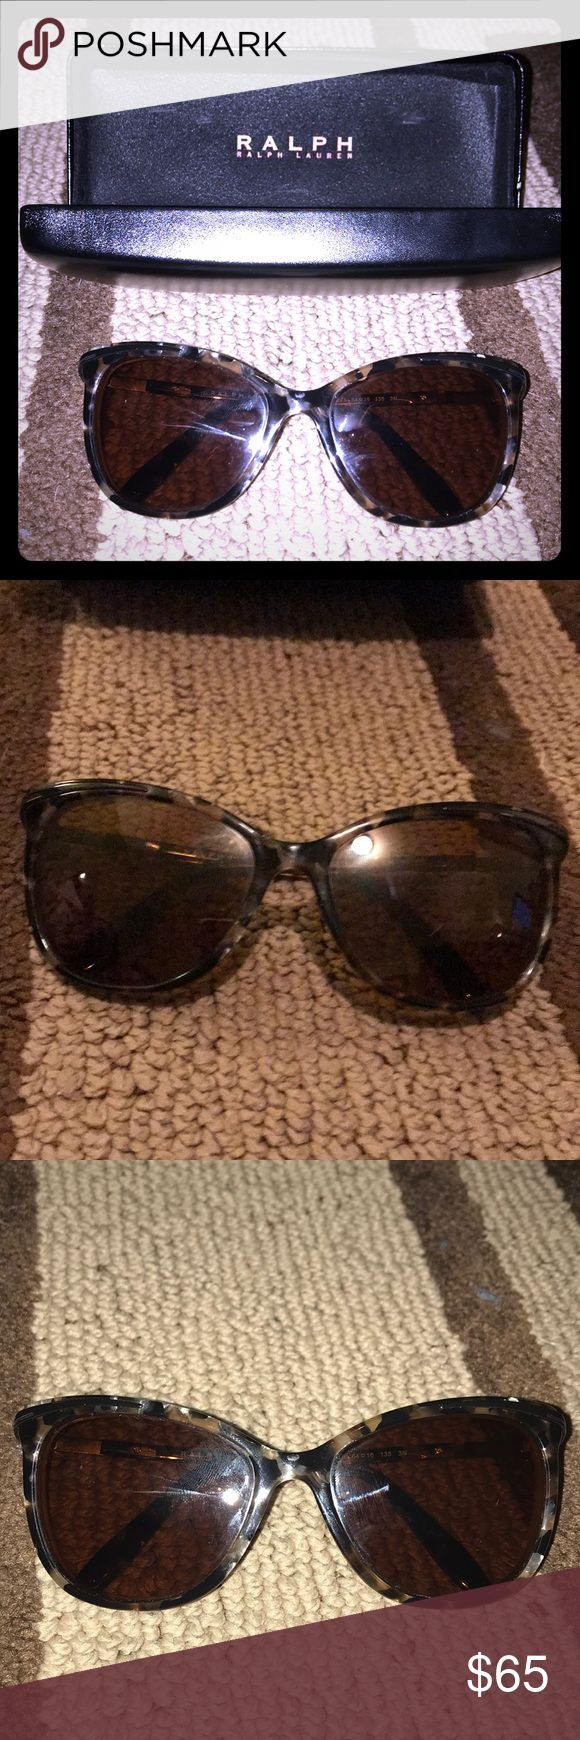 Ralph RX sunglasses No lenses for RX frames and original case. RA5203 hardly used in new condition pretty tortious color brown and black with hints of silver will look great with brown or grey lenses Ralph Lauren Accessories Sunglasses